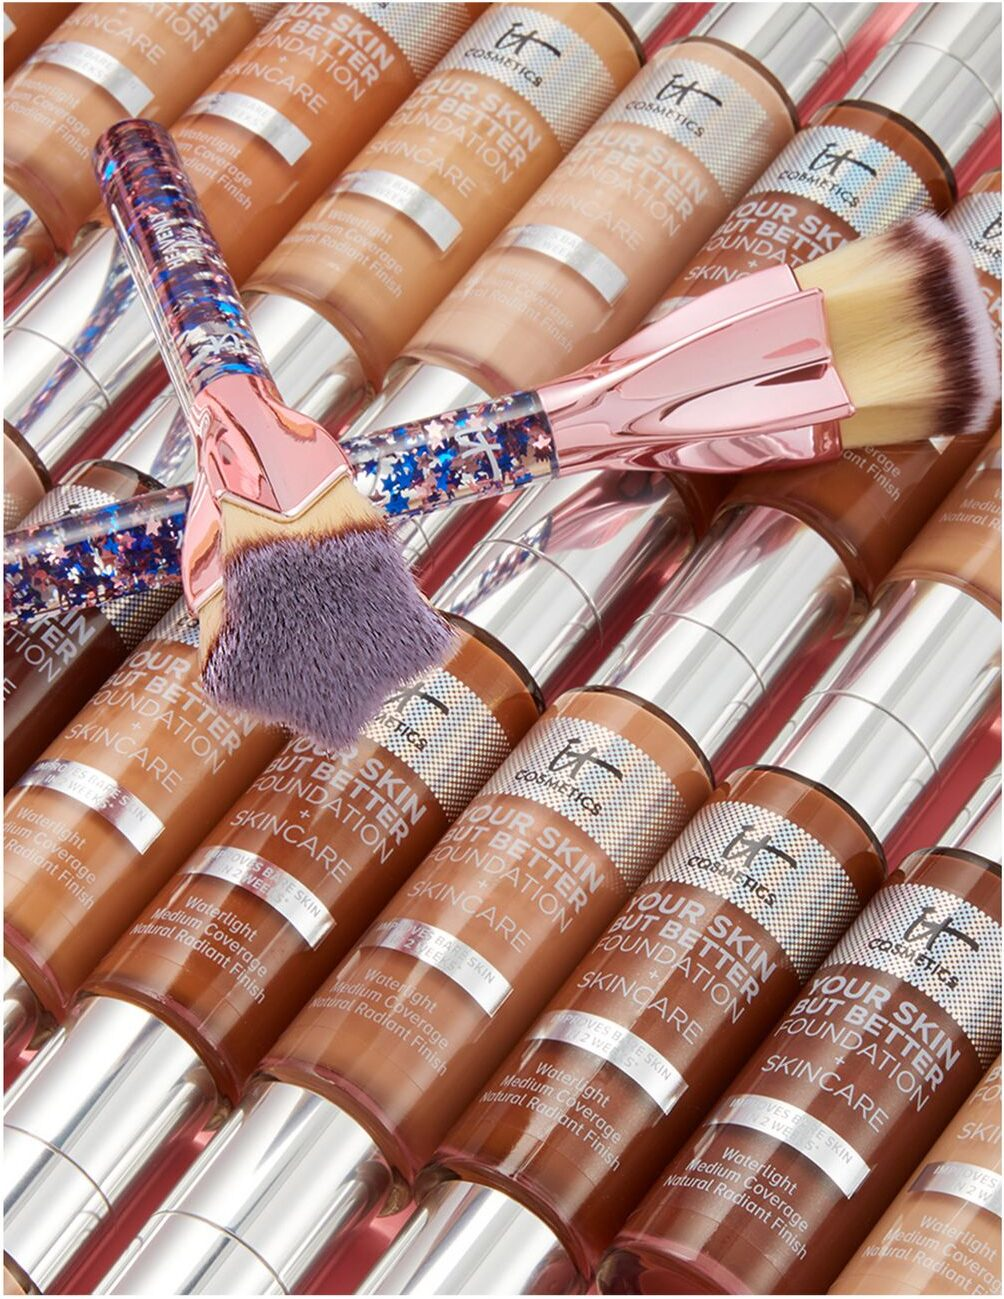 IT Cosmetics Heavenly Luxe Superstar Flawless Foundation Brush 2021